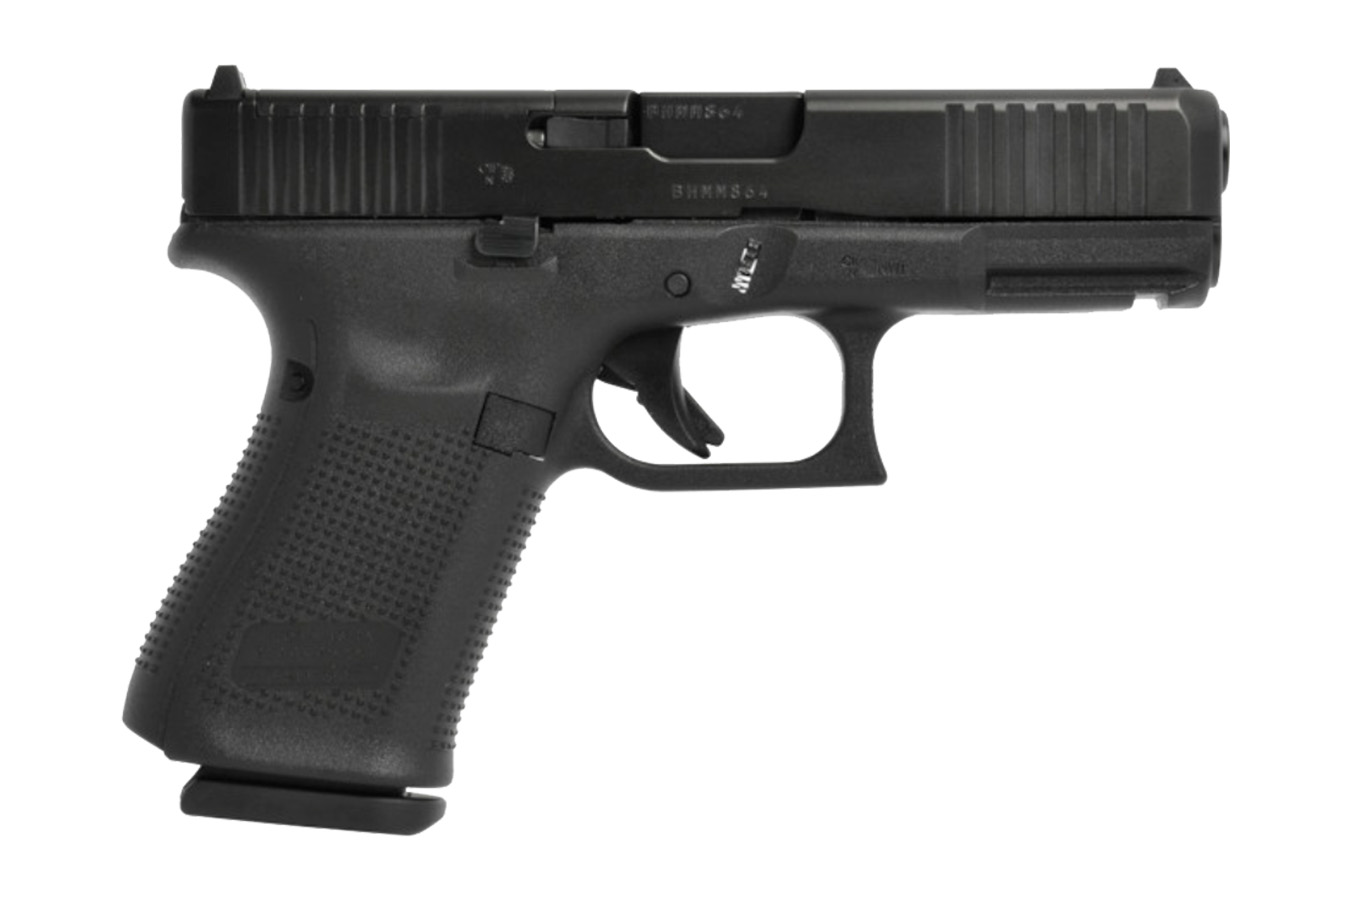 G19 GEN5 9MM FULLSZ MOS F-SERRATION (LE)